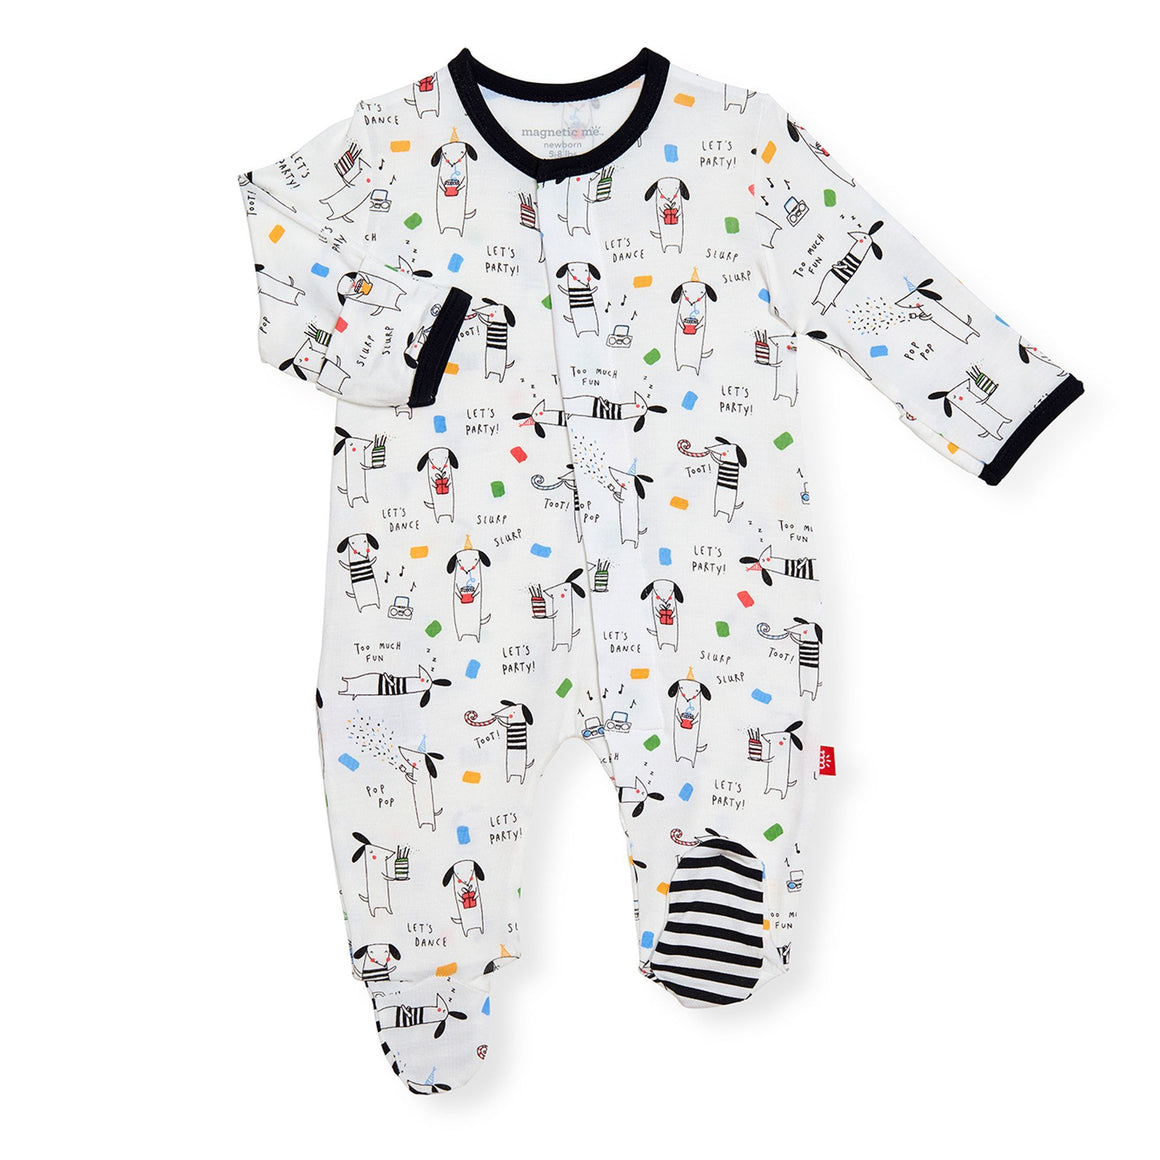 Magnificent Baby Apparel 9-12 Mo / Raise The Woof Magnetic Me Raise The Woof Modal Footie